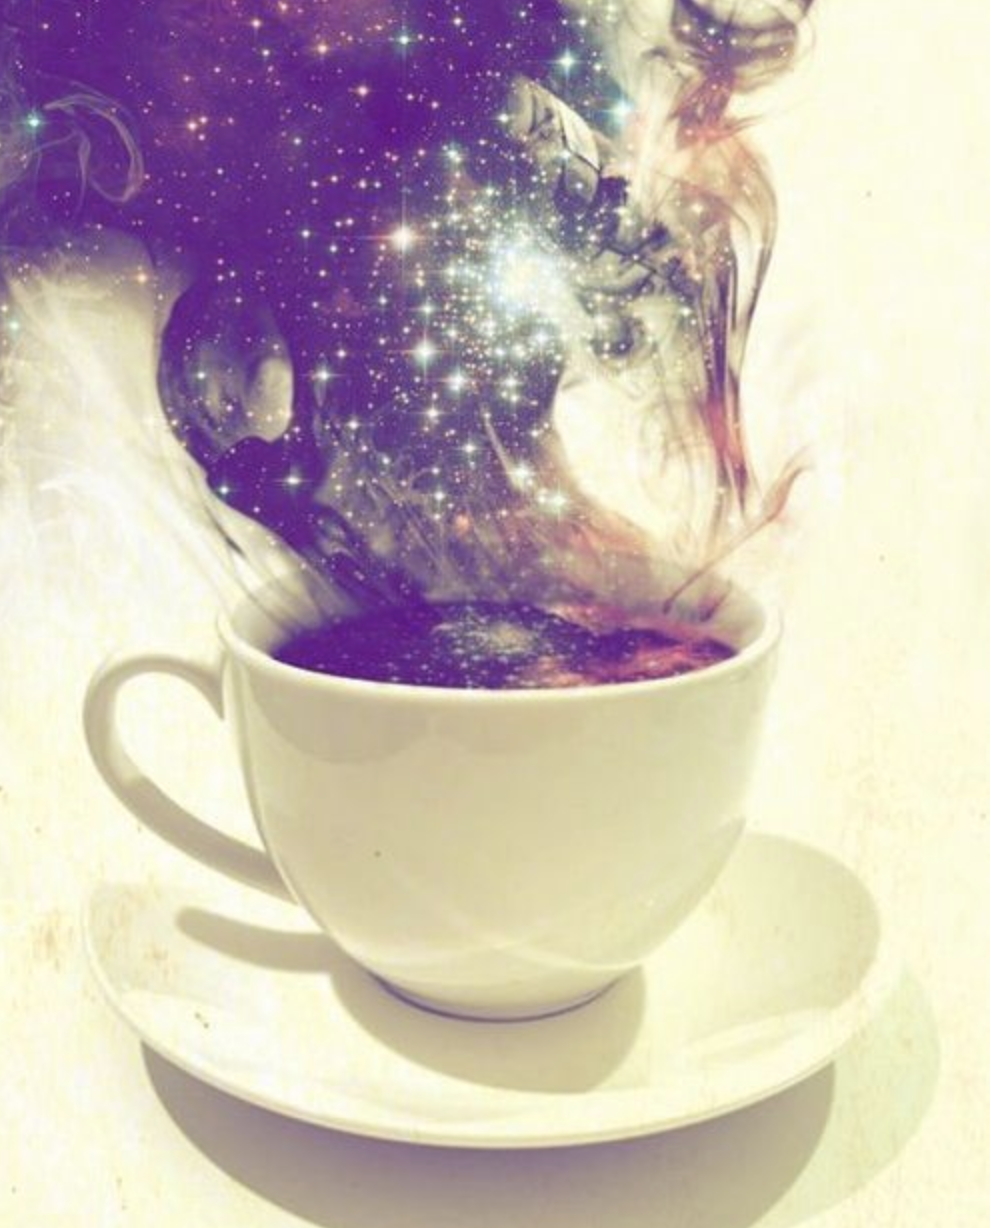 Glitter rising from a cup of coffee's steam